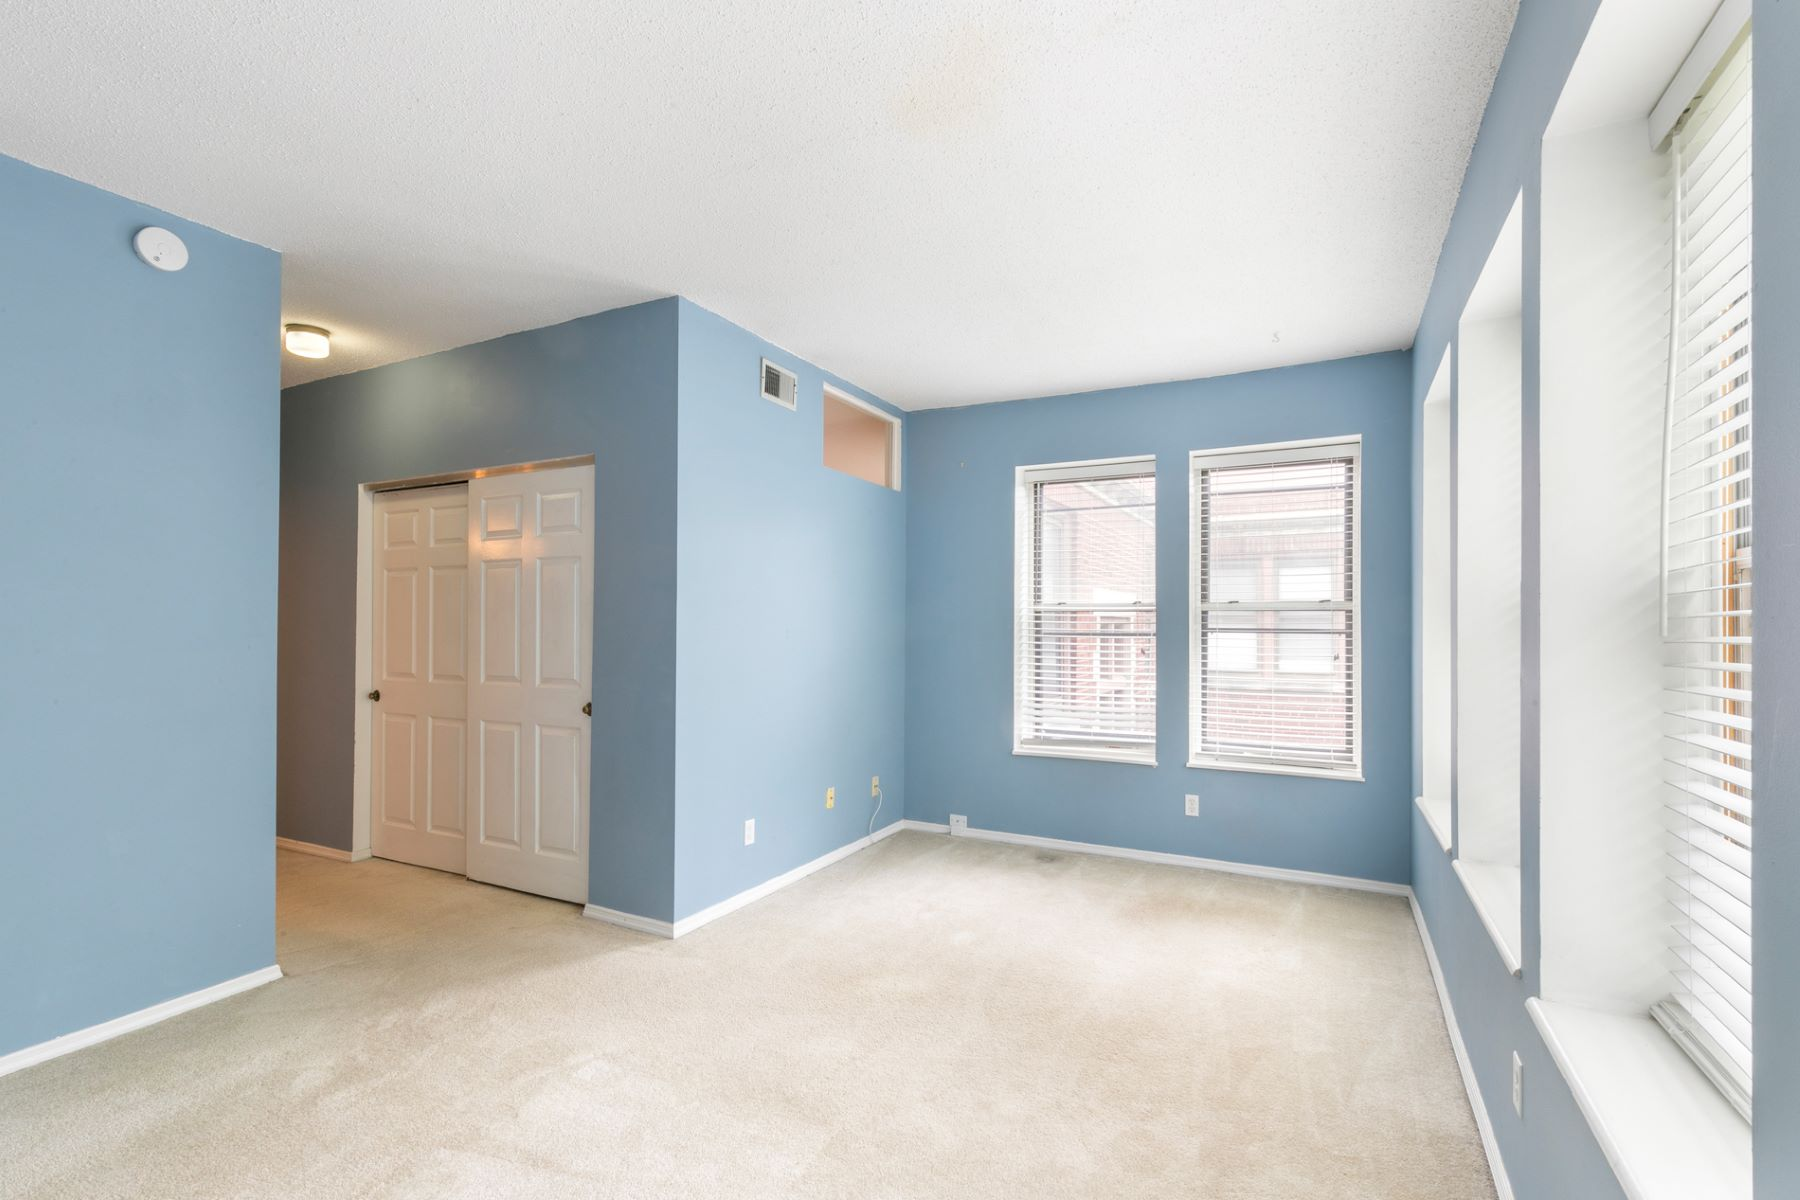 Additional photo for property listing at Pershing Ave 5398 Pershing Ave # 3# St. Louis, Missouri 63112 United States